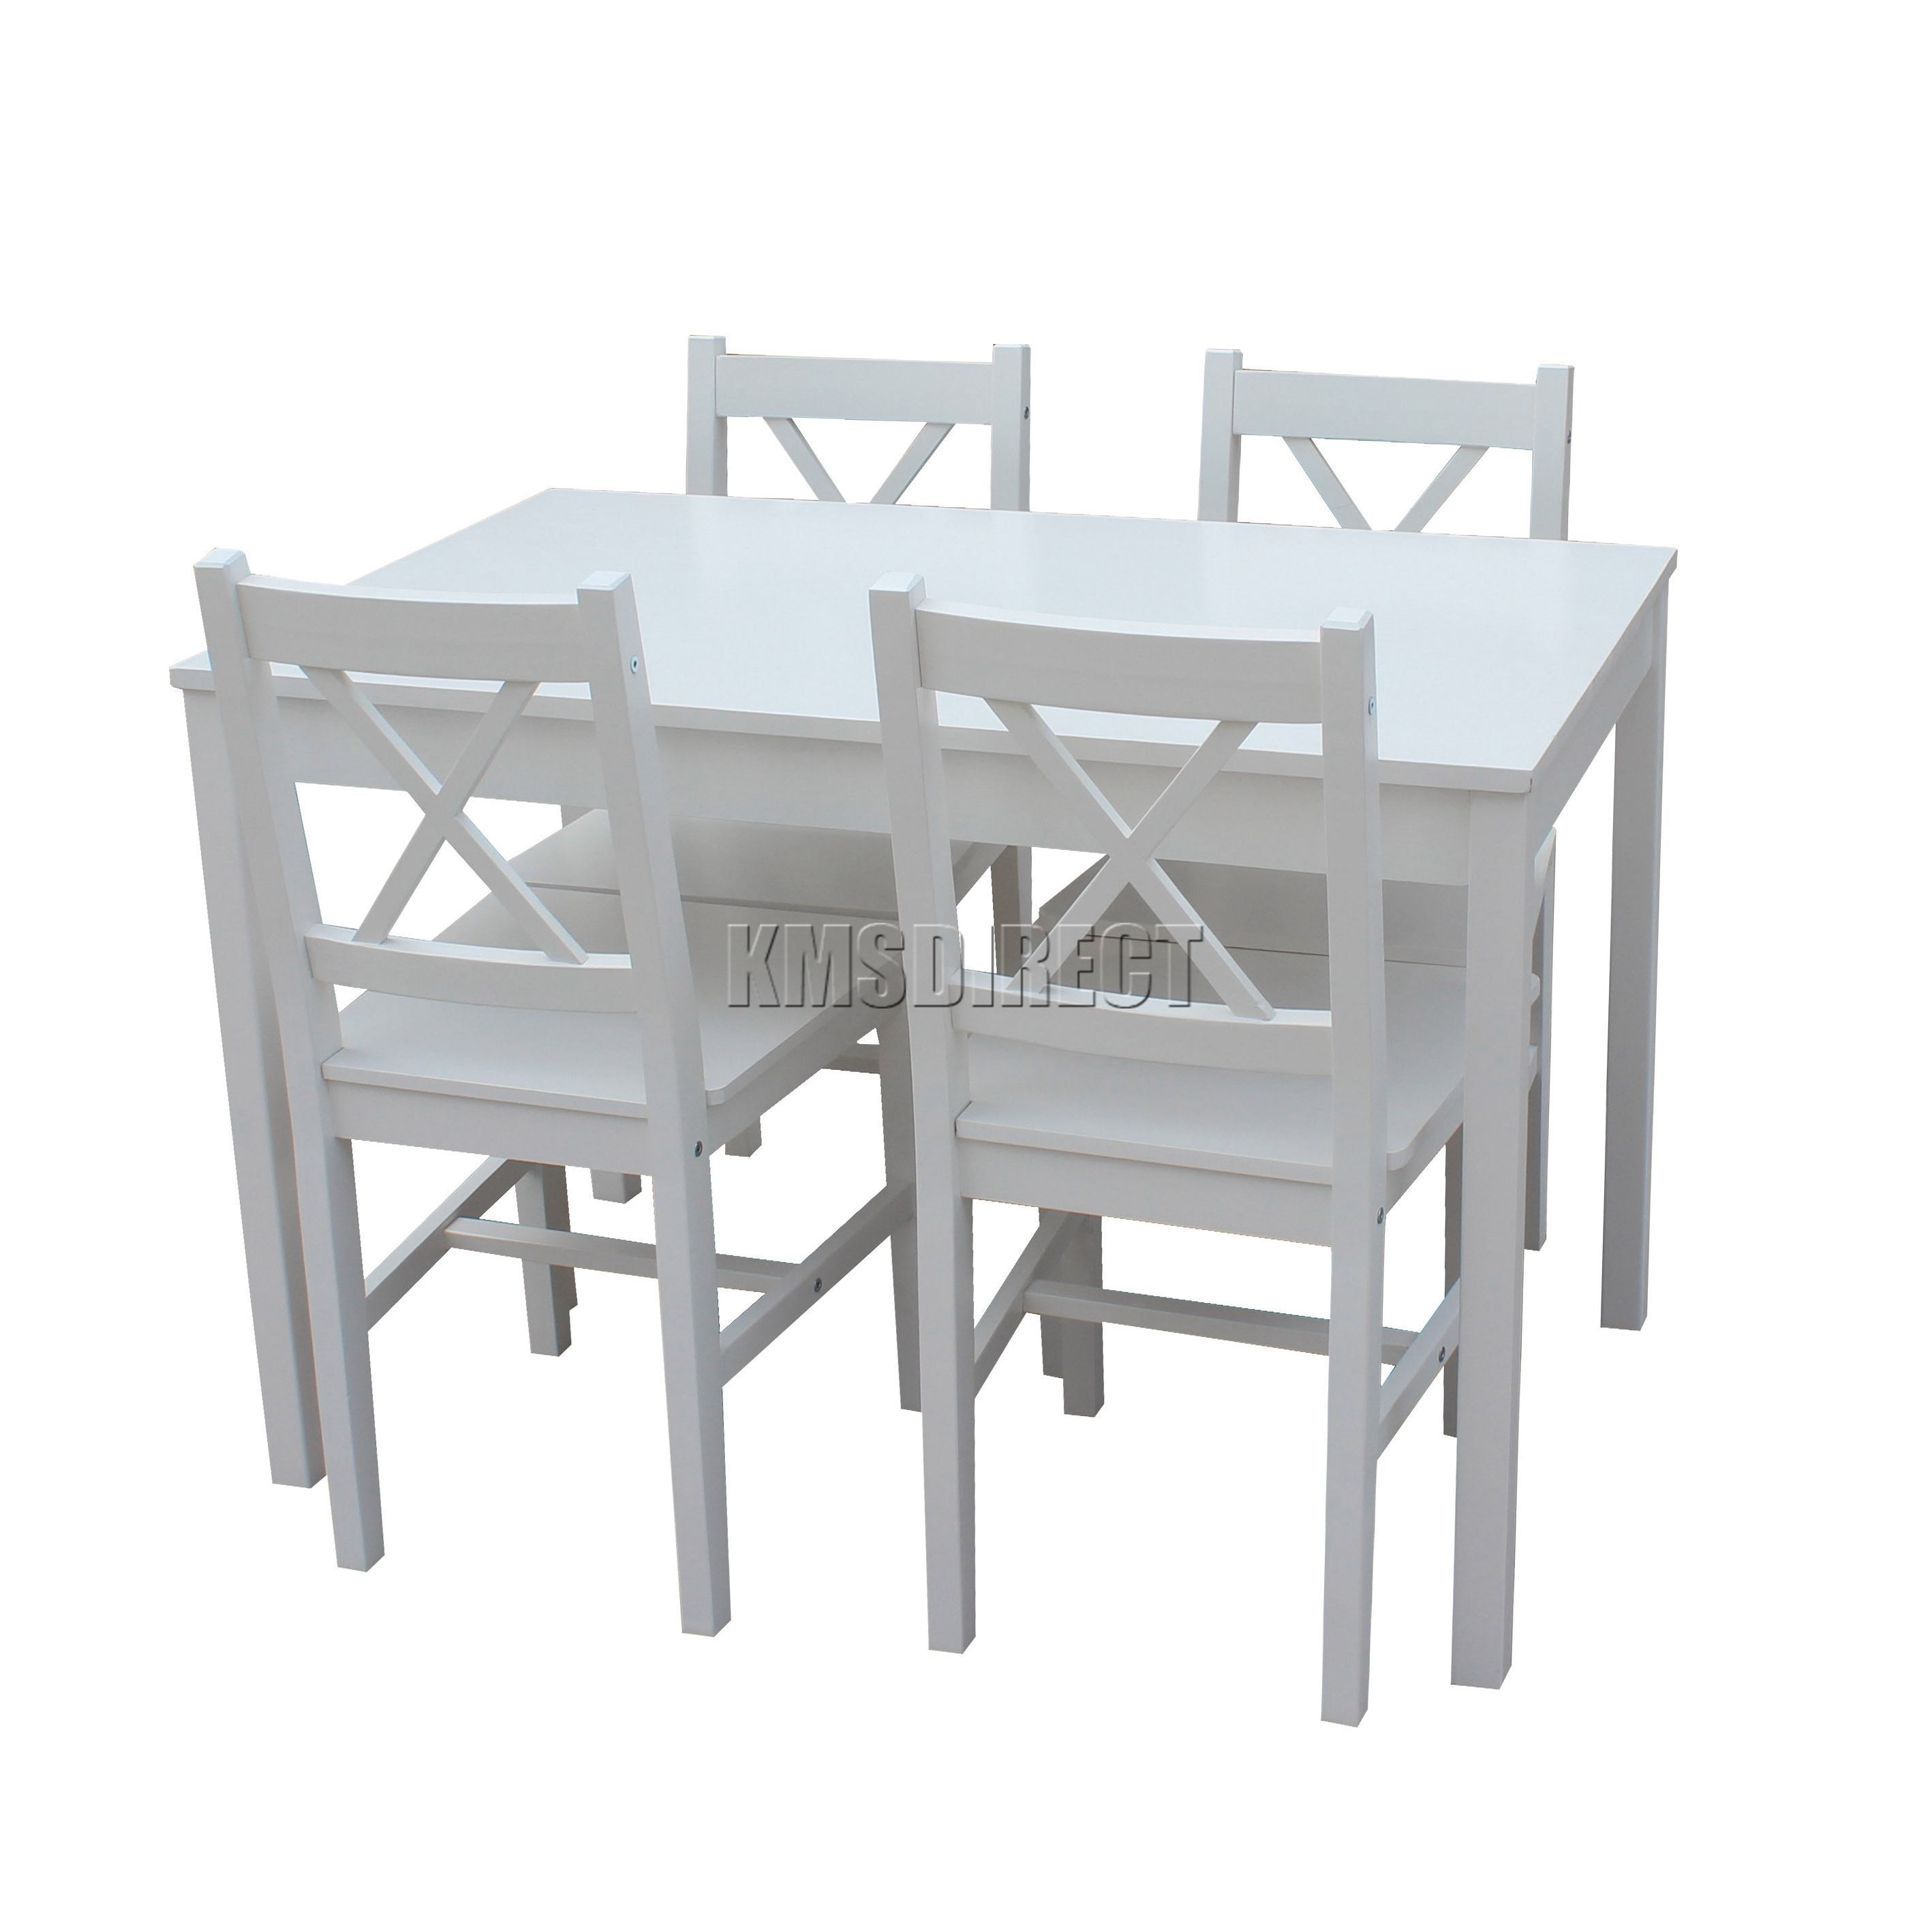 Sentinel Cosmetic Damage Solid Wooden Dining Table With 4 Chairs Set Kitchen White